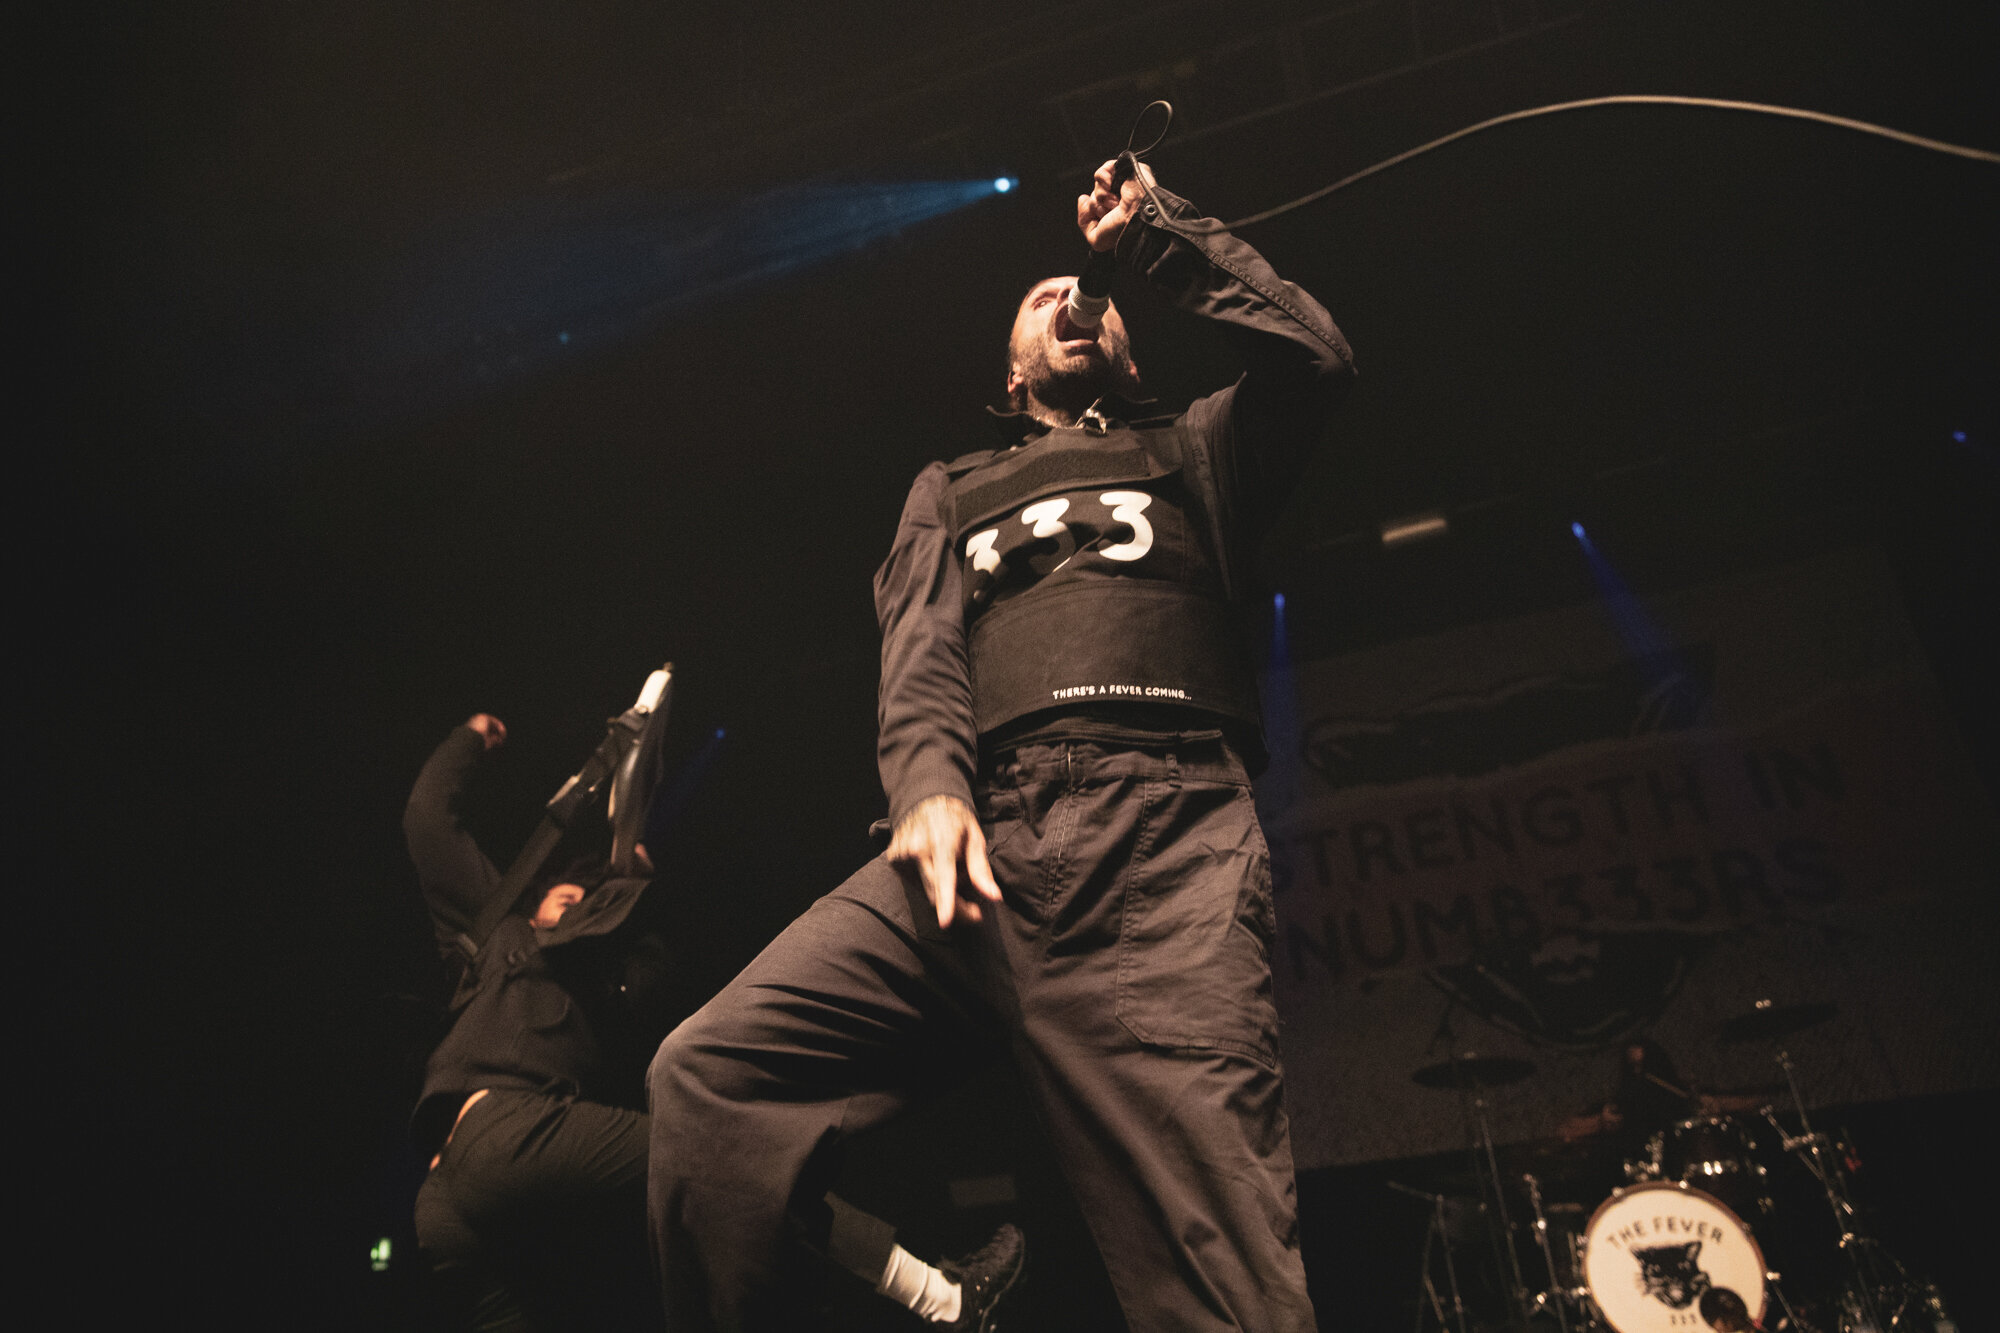 Fever 333 at the O2 Forum Kentish Town, London, photo by Gili Dailes (10).jpg